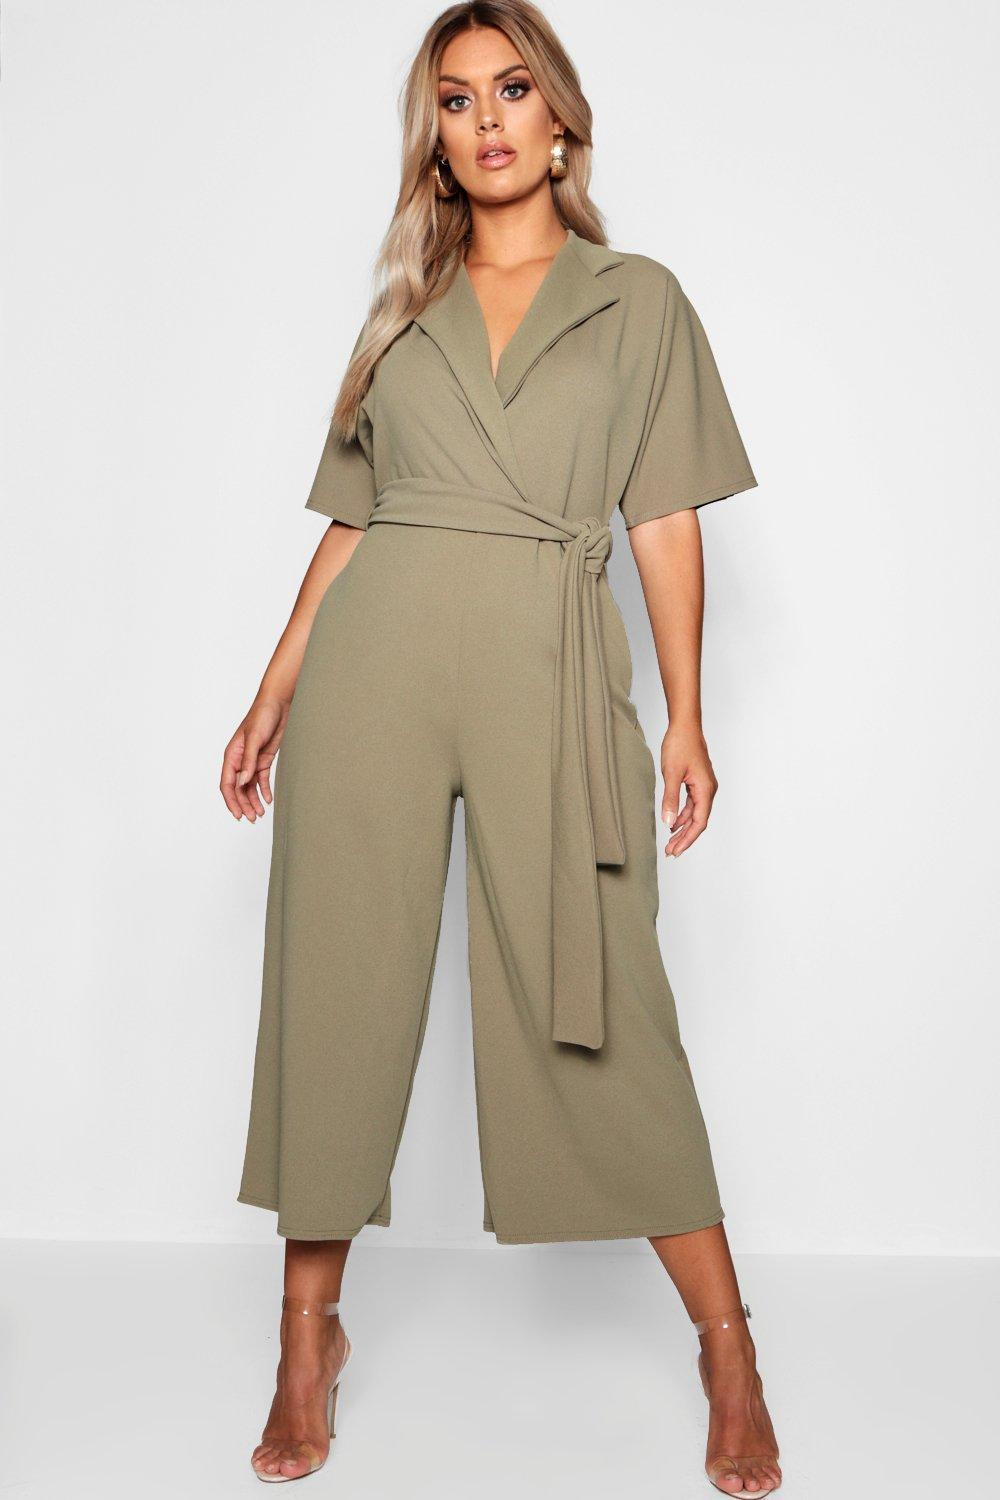 6004966ee64 Boohoo Plus Utility Culotte Jumpsuit in Green - Lyst